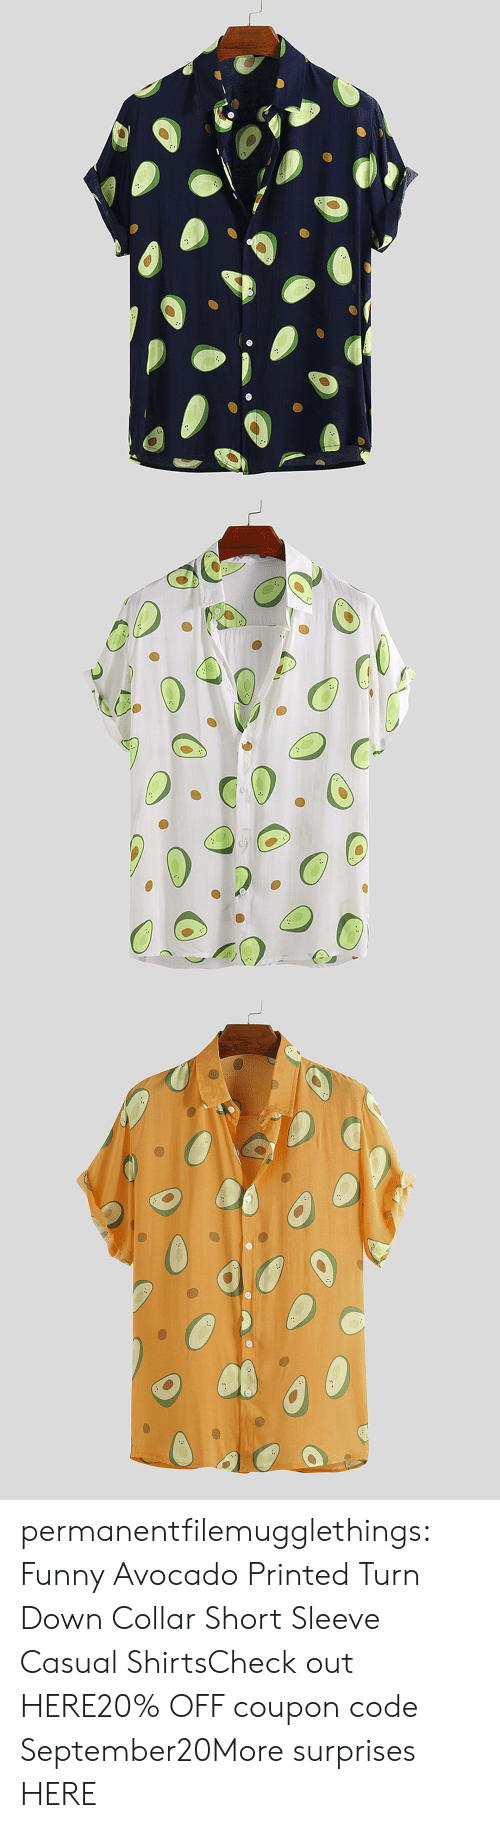 Funny, Tumblr, and Avocado: permanentfilemugglethings:  Funny Avocado Printed Turn Down Collar Short Sleeve Casual ShirtsCheck out HERE20% OFF coupon code:September20More surprises HERE